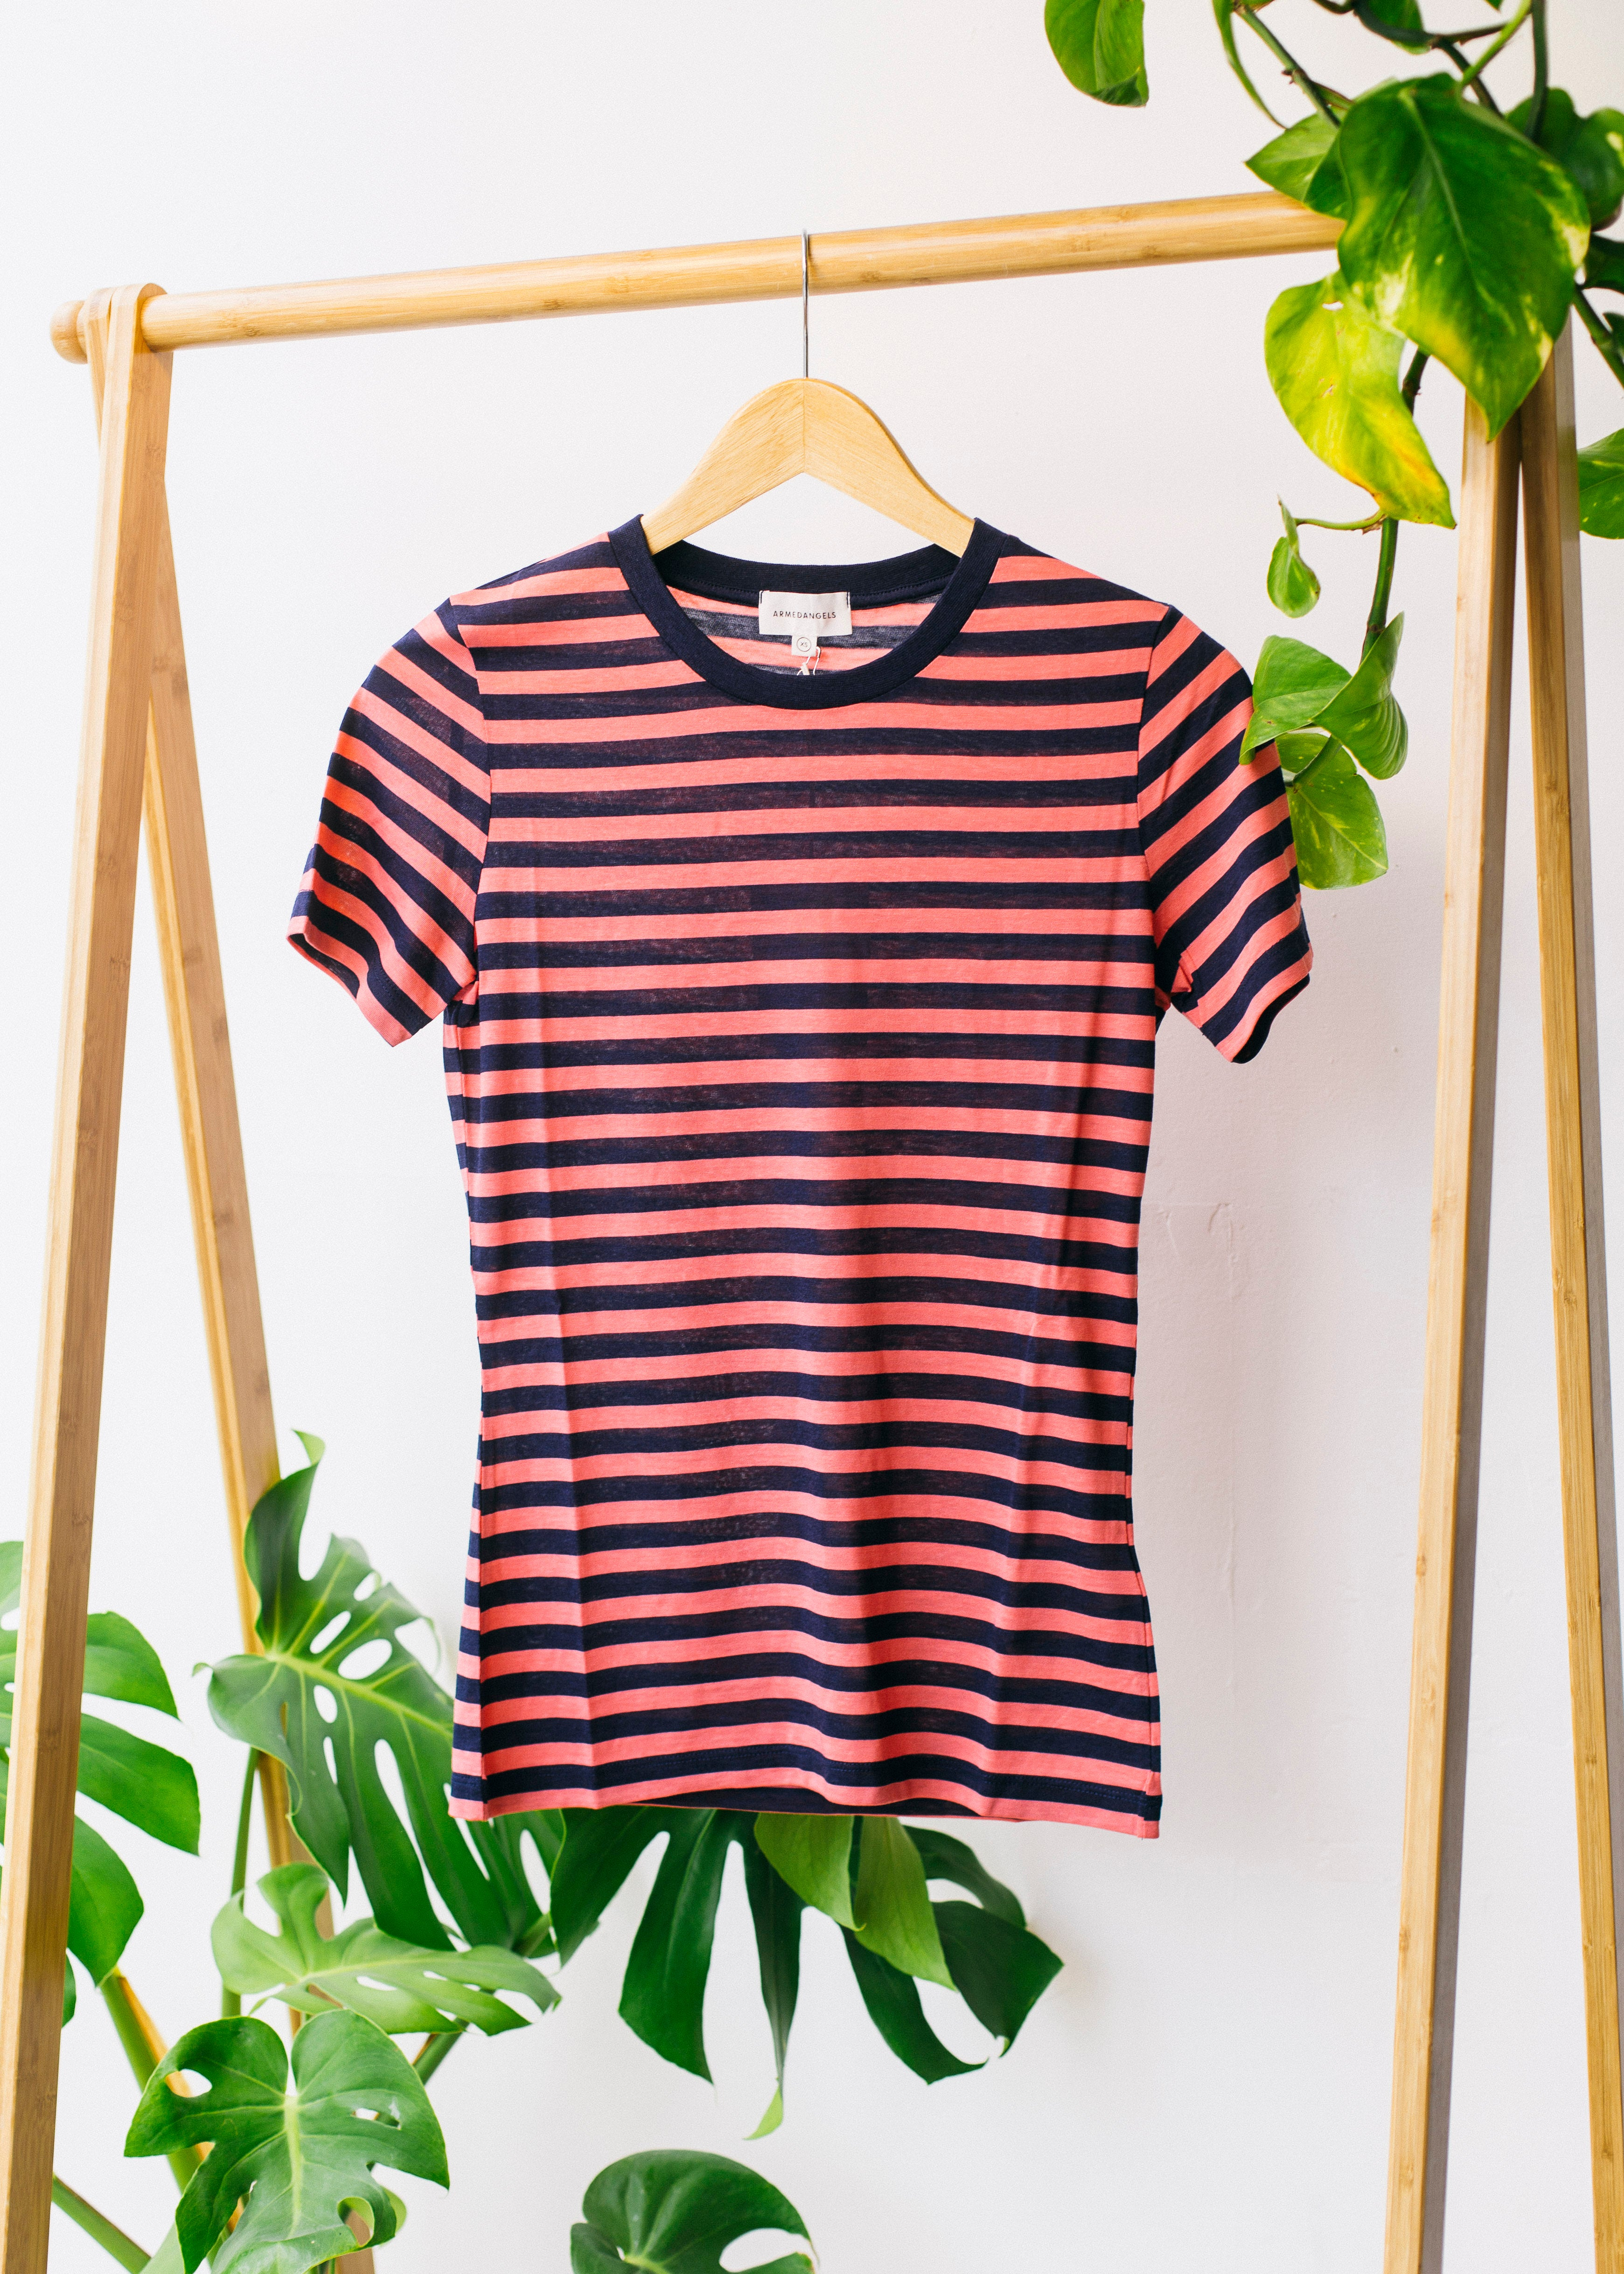 Lida Bold Stripes in Vibrant Coral-T-Shirt-Sancho's Dress